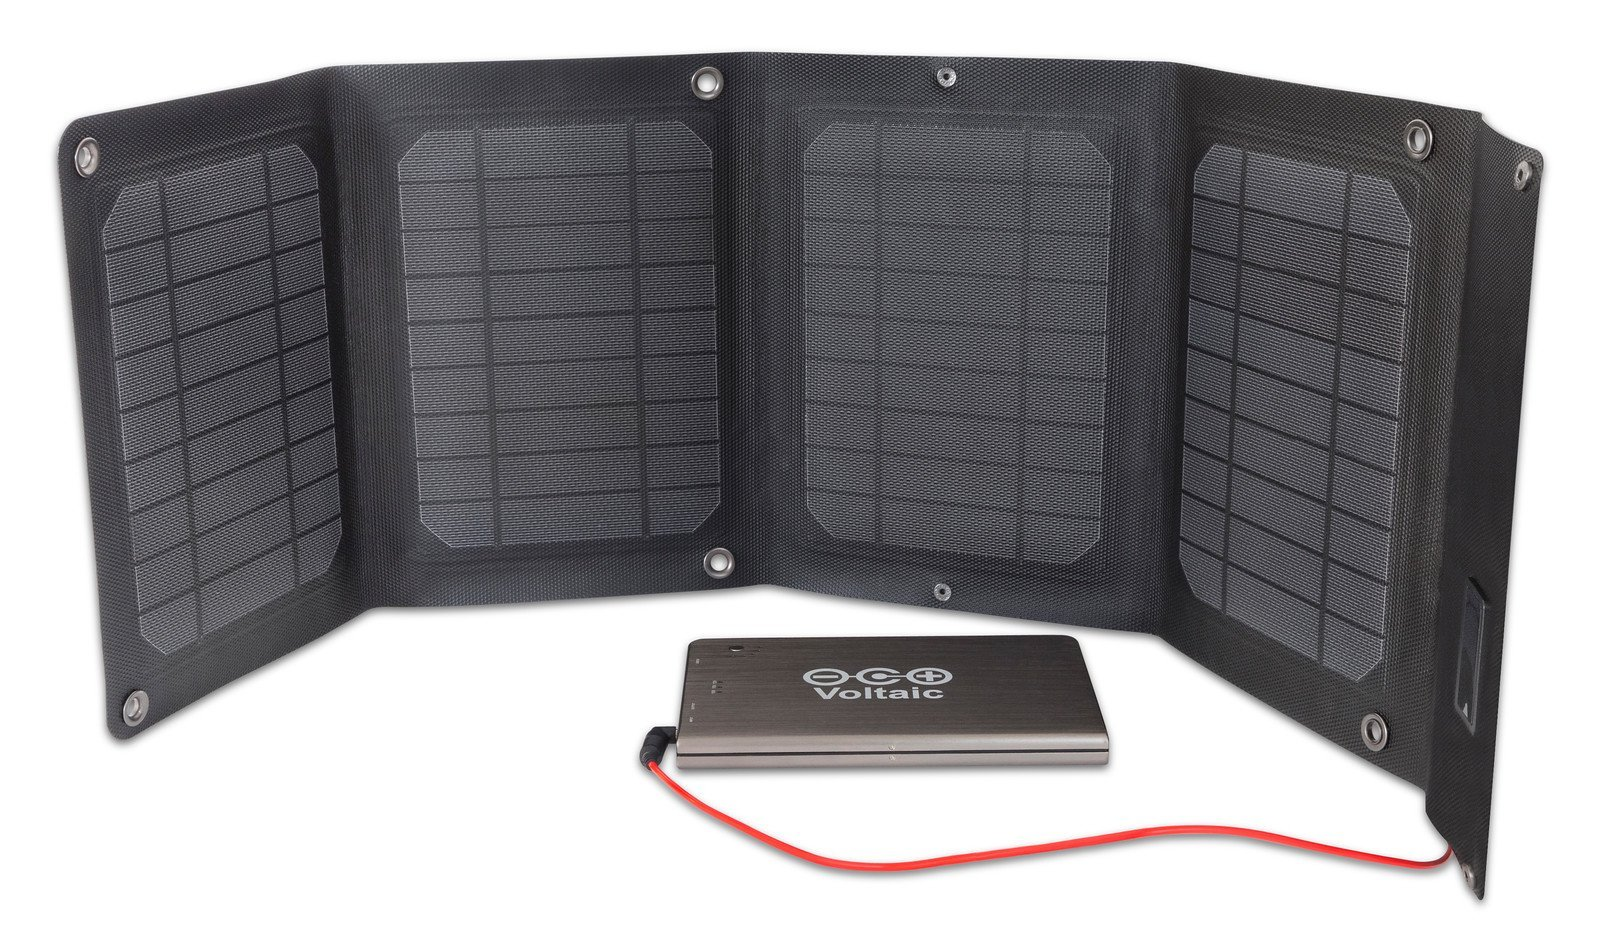 Voltaic Systems Arc 20 Watt Rapid Solar Laptop Charger | Includes a Battery Pack (Power Bank) and 2 Year Warranty | Powers Laptops Including Apple MacBook, Phones, USB Devices and More